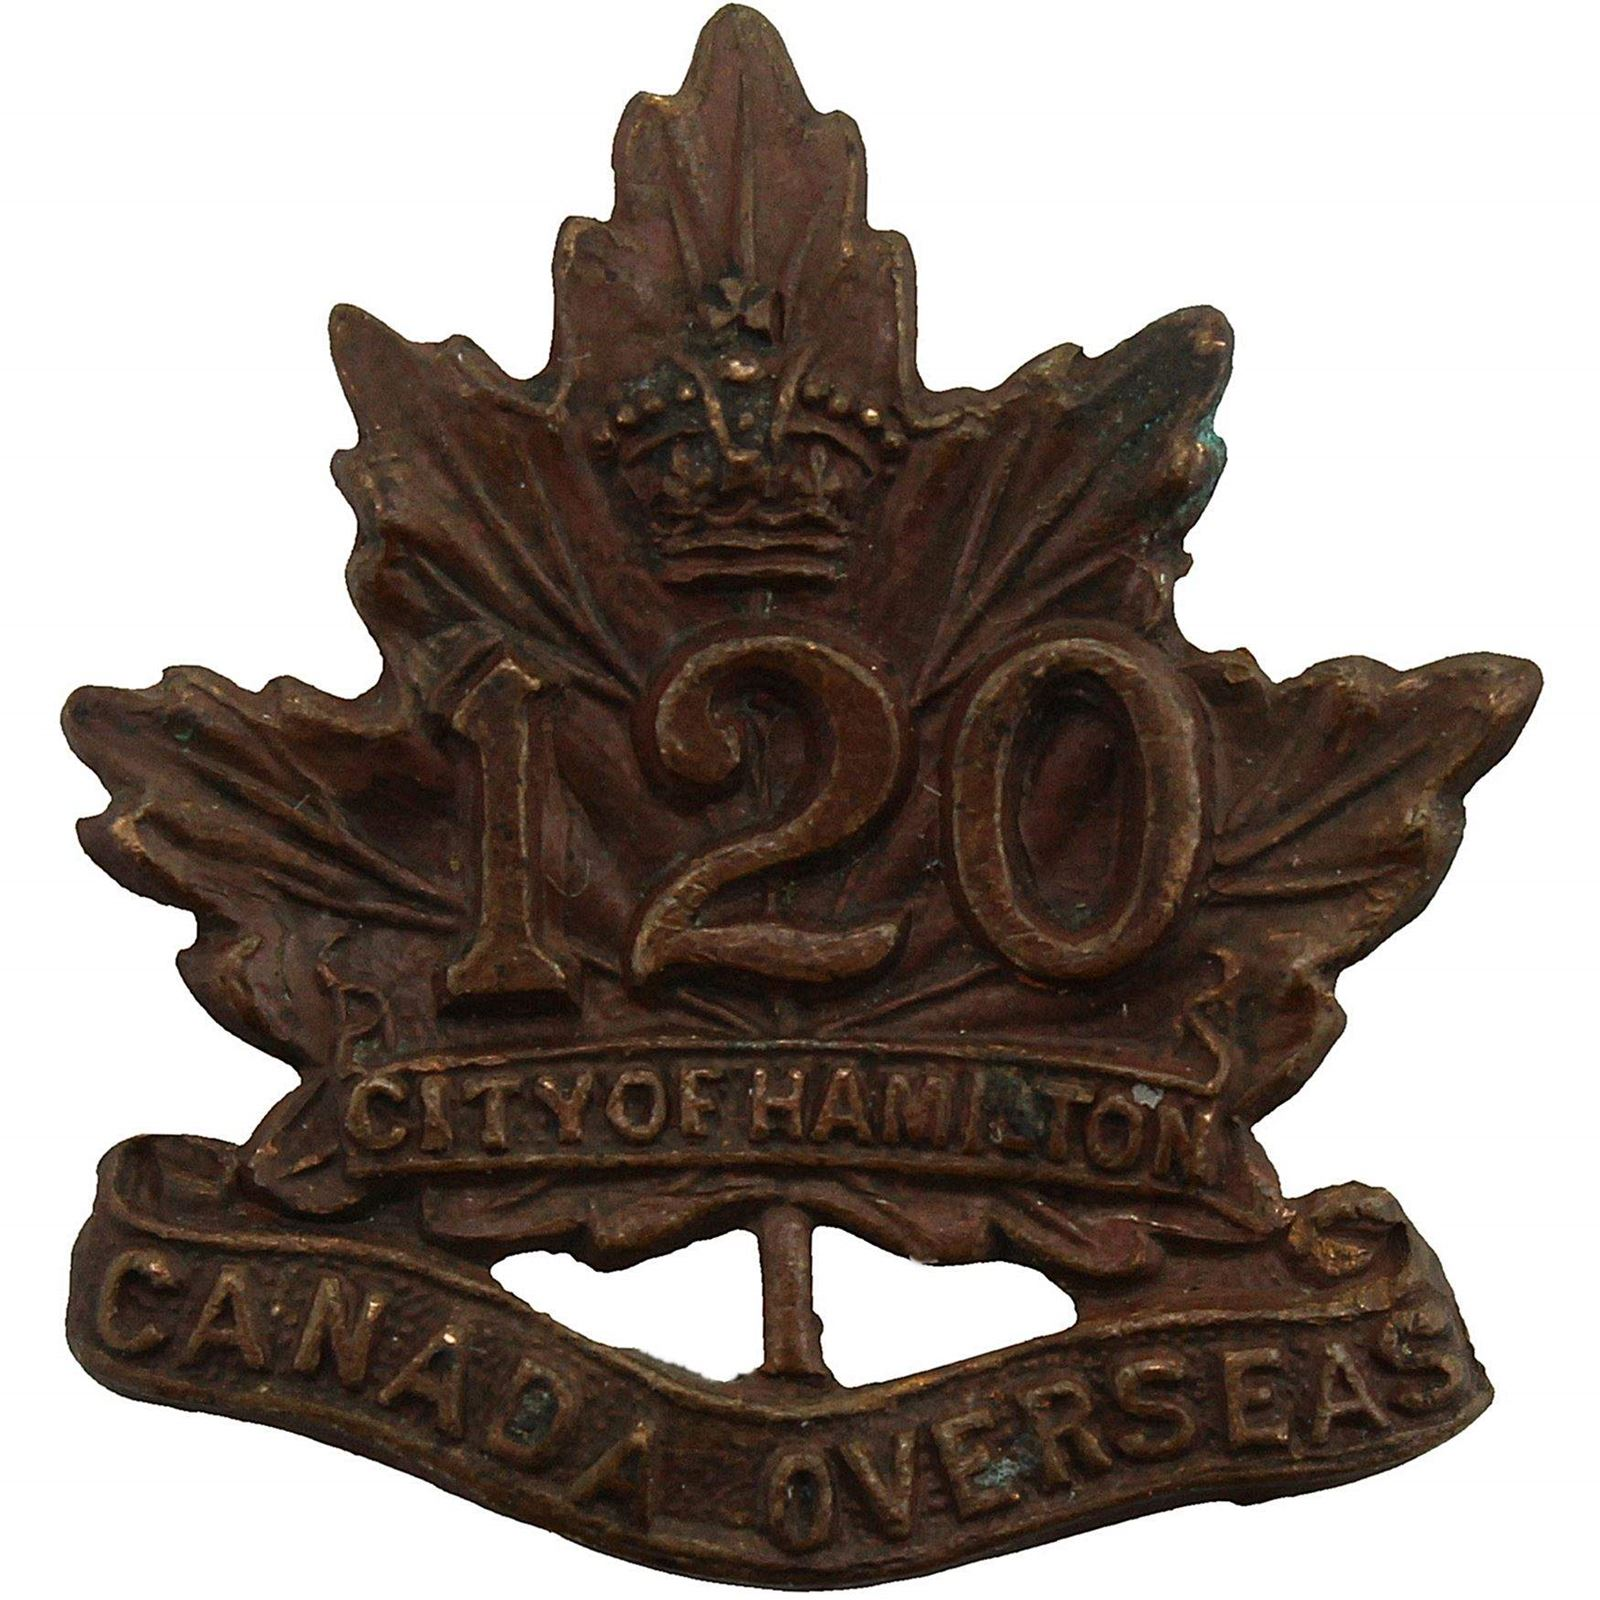 Details about WW1 Canadian 120th Overseas Battalion City of Hamilton Canada  Collar Badge KD98